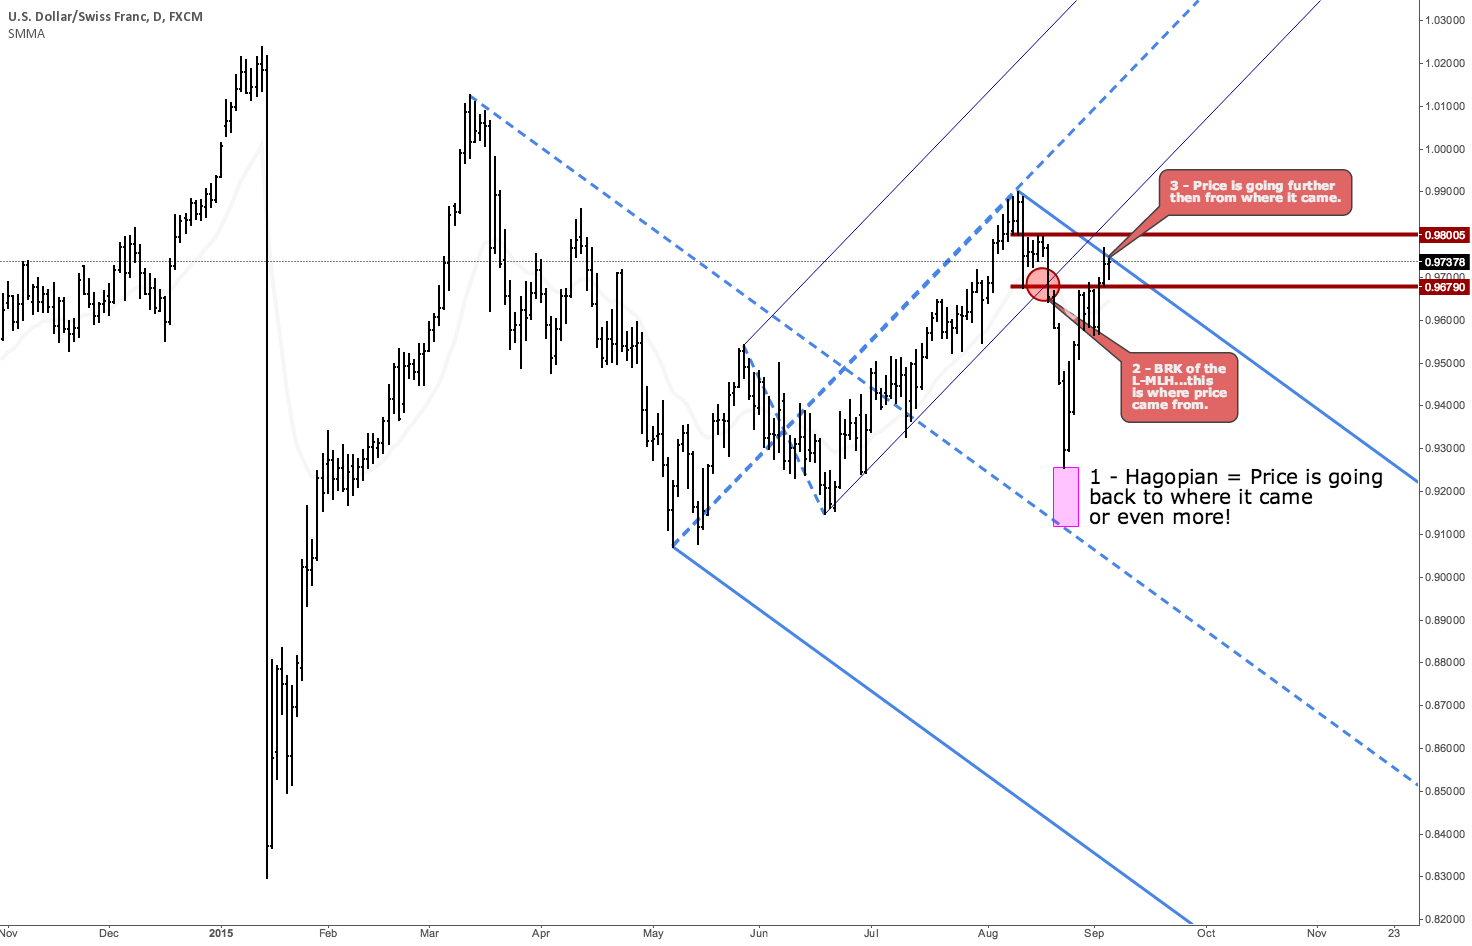 USDCHF - Hagopian and now at resistance